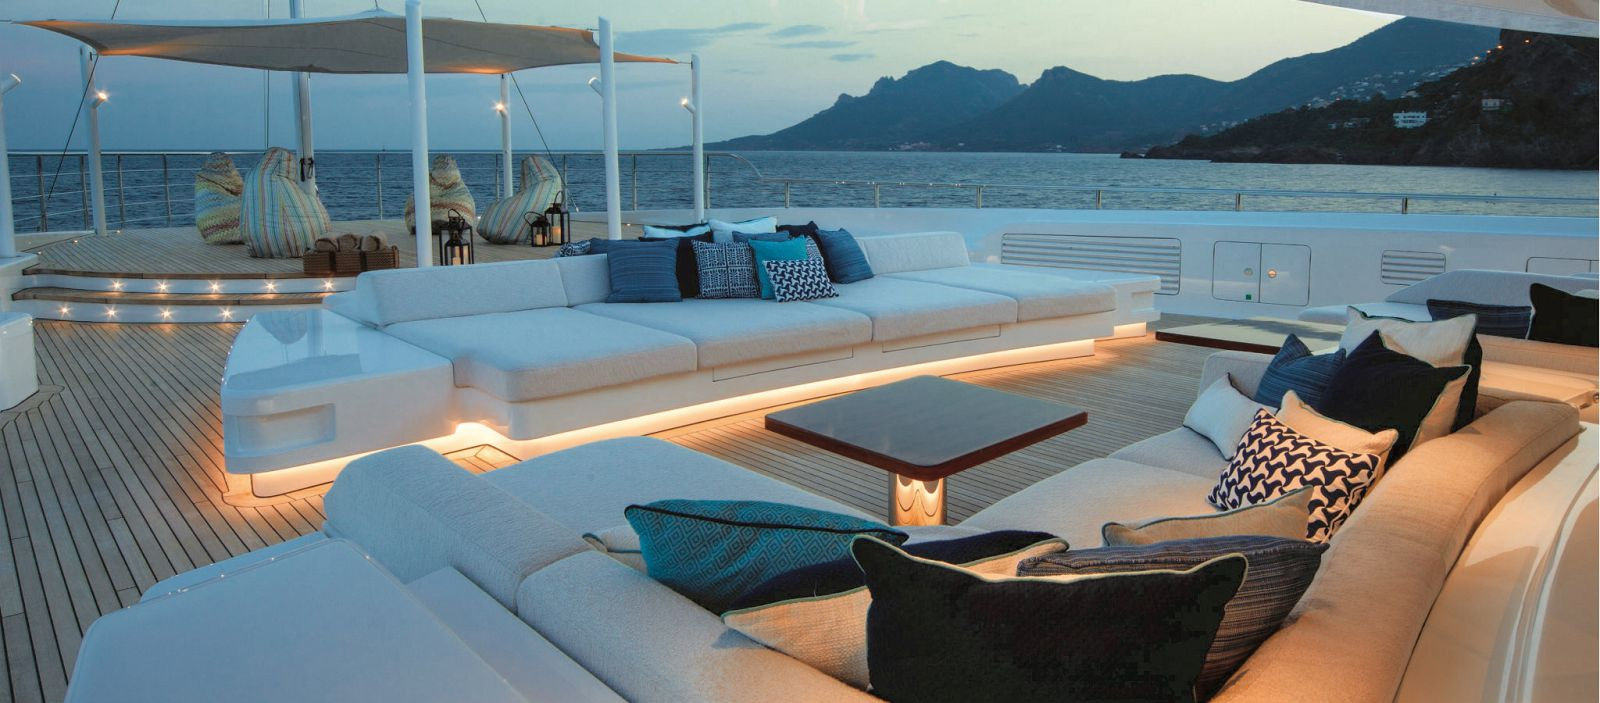 Bow of the boat lit up around the deck couches and overhead coverage. >